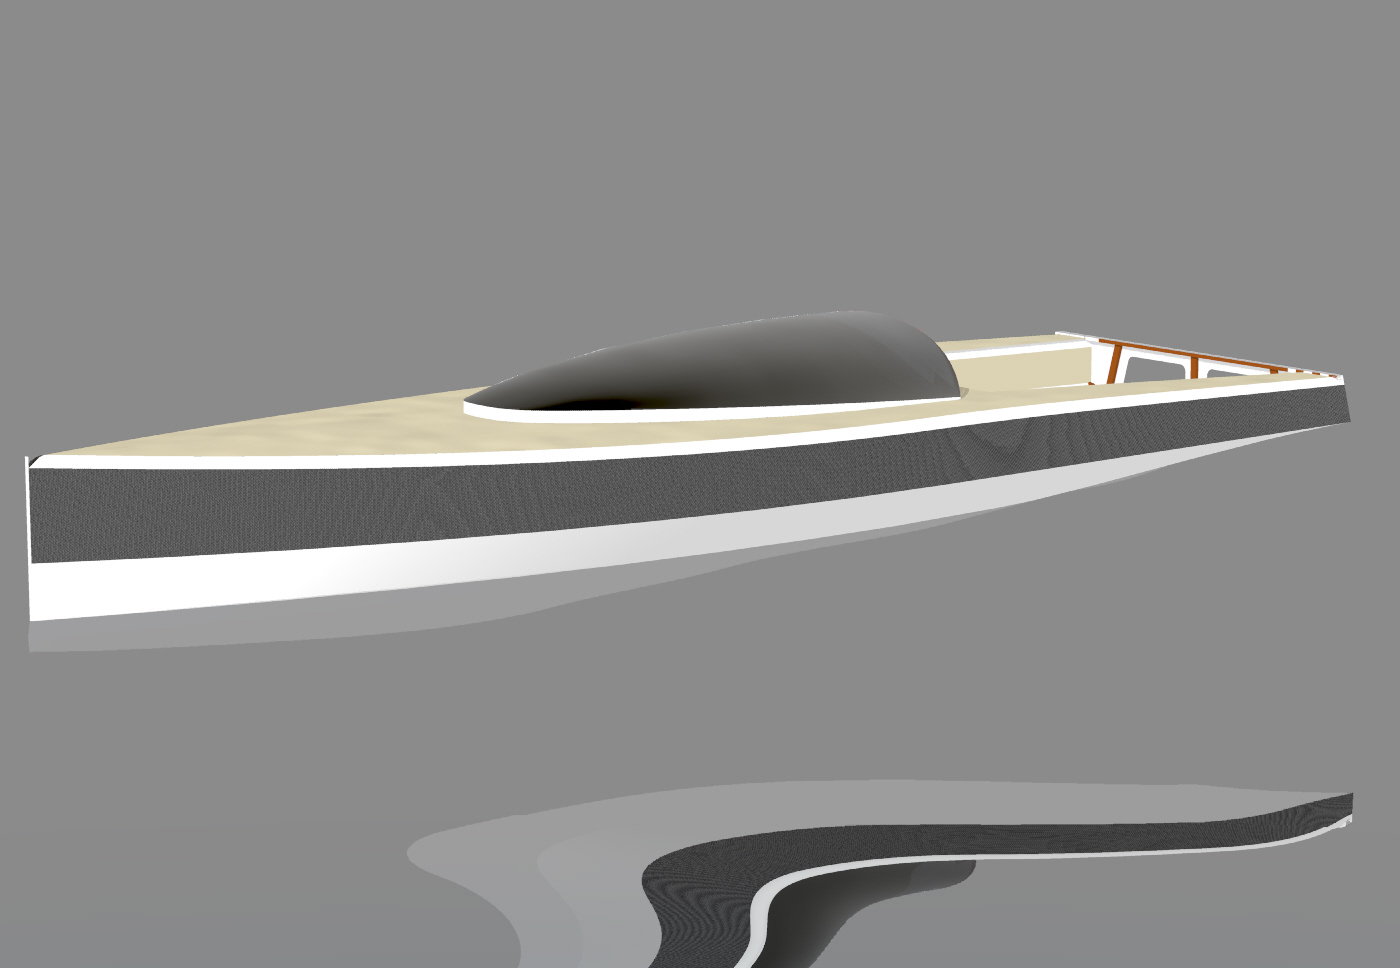 Plywood Displacement Boat Plans Learn besides Help Power Sail Cat Hull ...